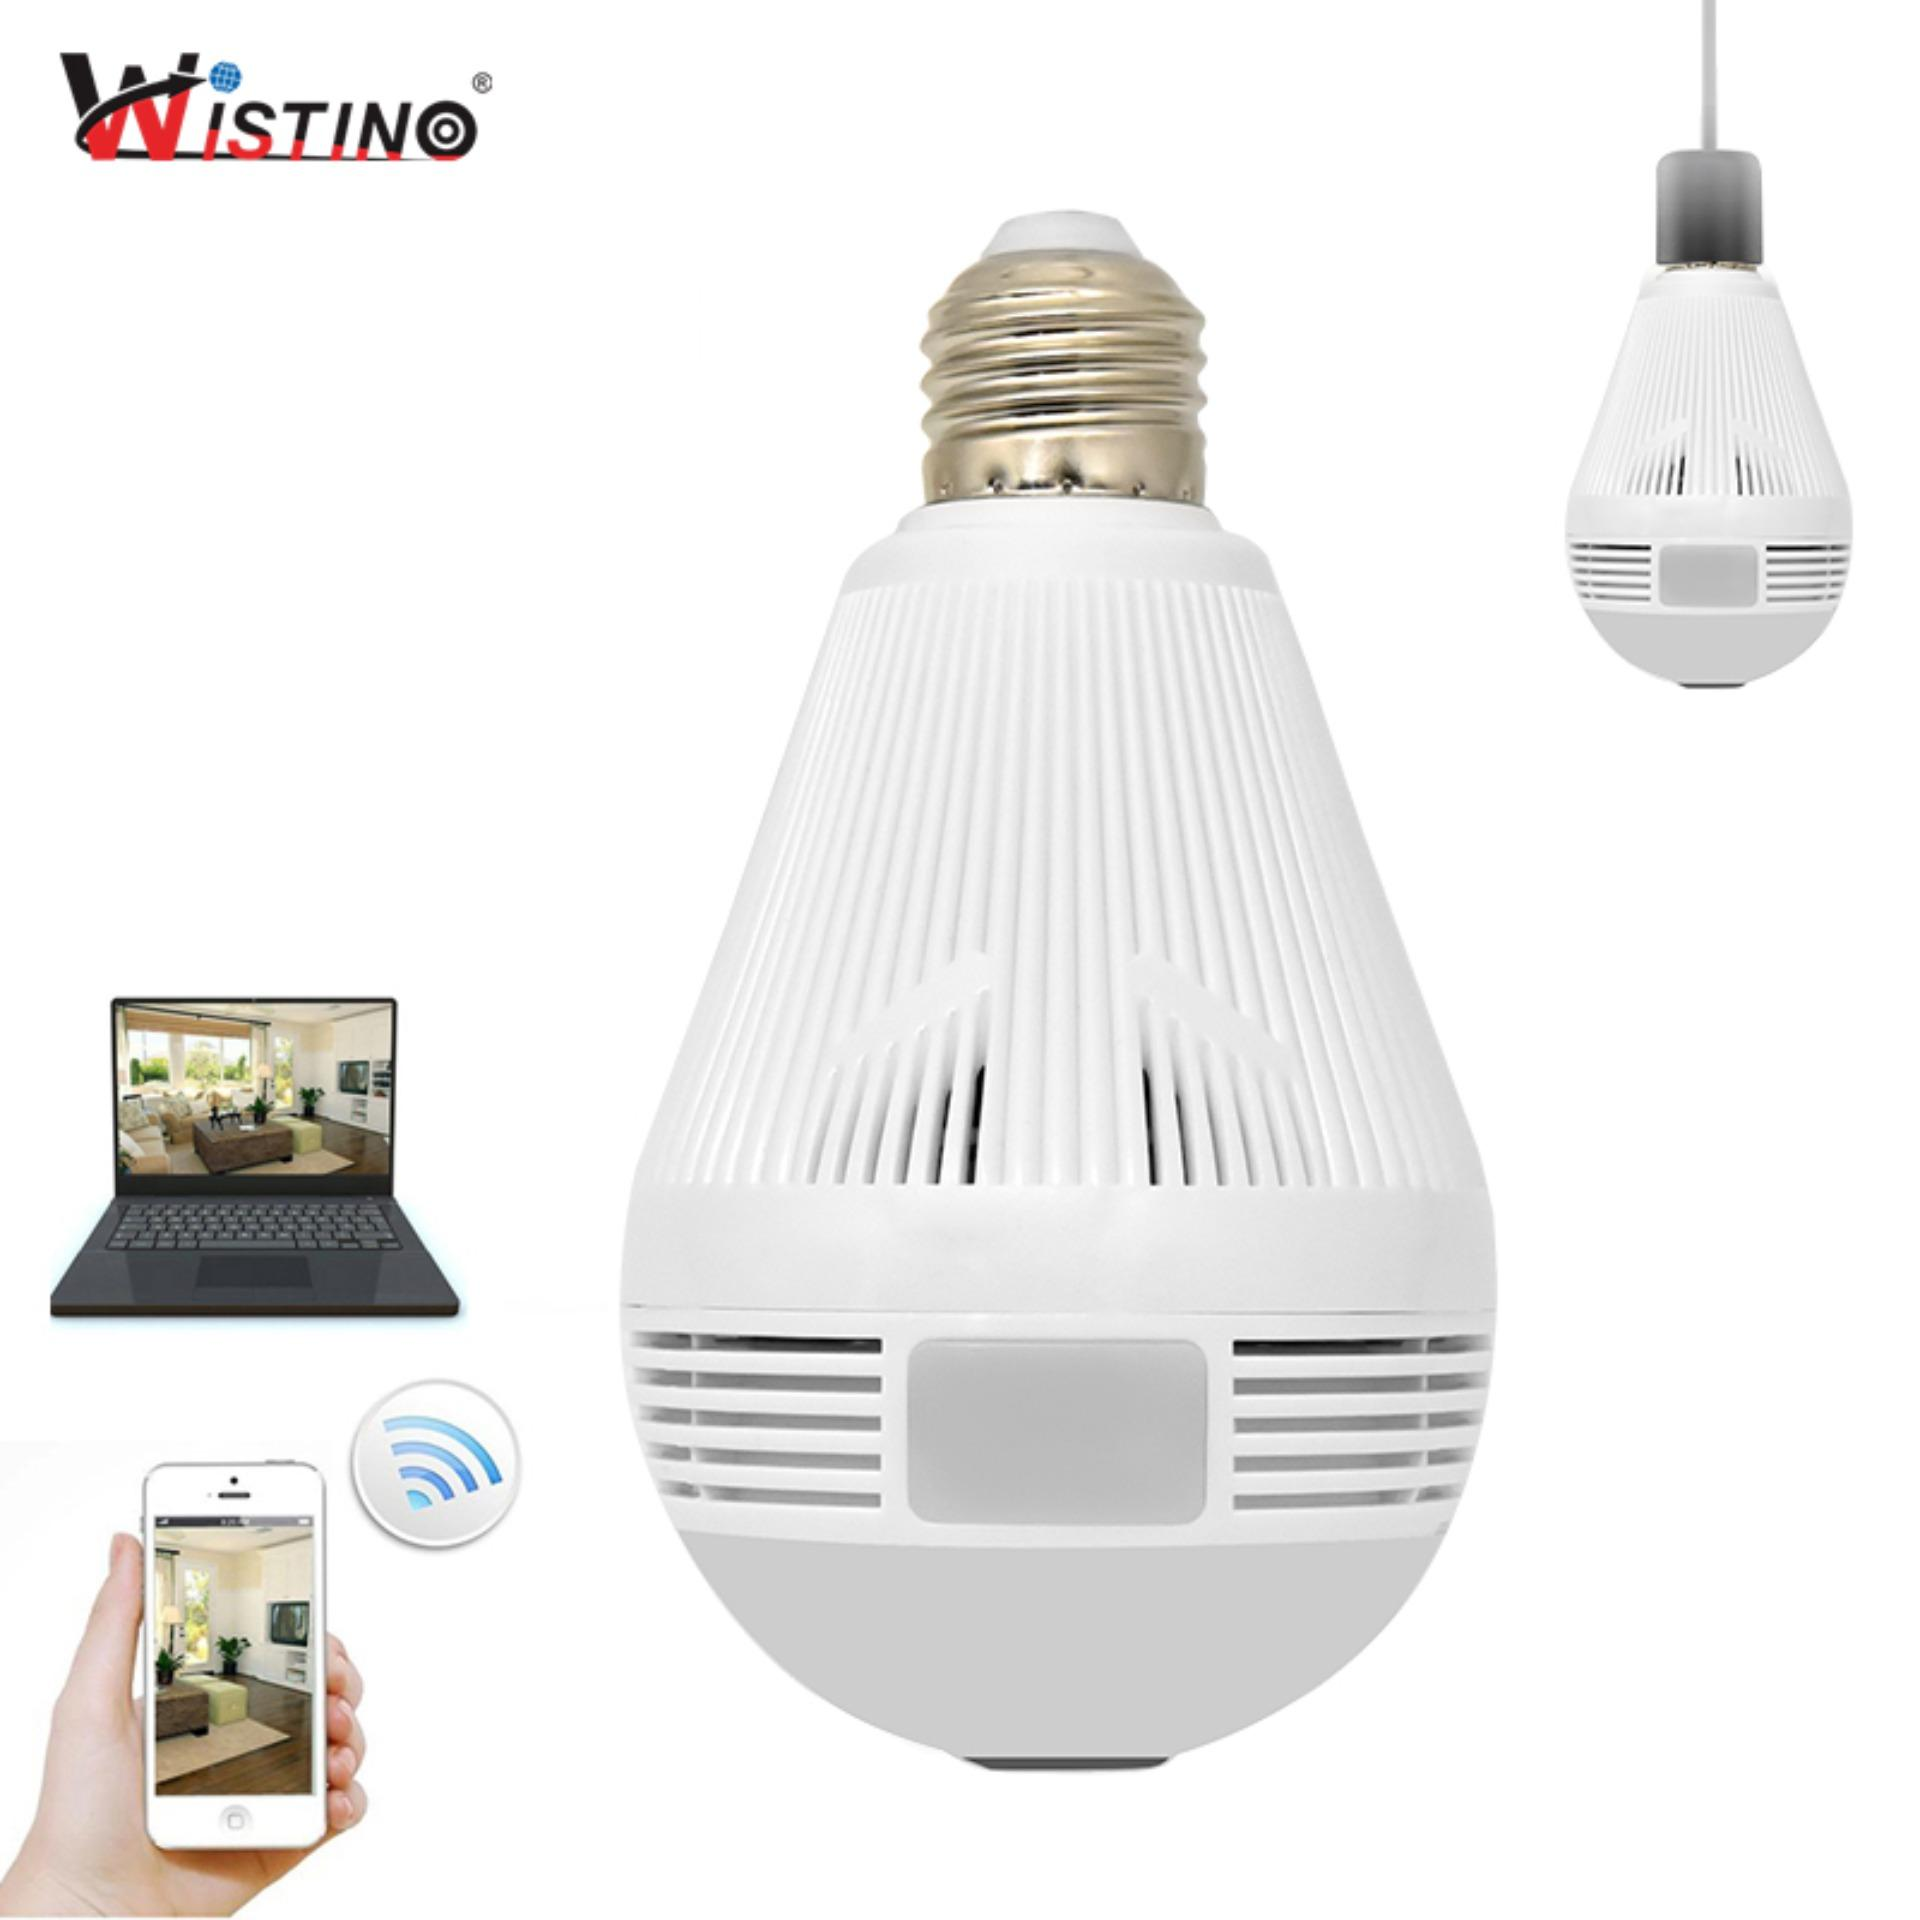 Beli Wistino Cctv 960 P Wireless Ip Kamera Bulb Vr Panoramic Camera Light Wifi Fisheye 360 Derajat Home Surveillance Security Monitor Xmeye Intl Online Murah